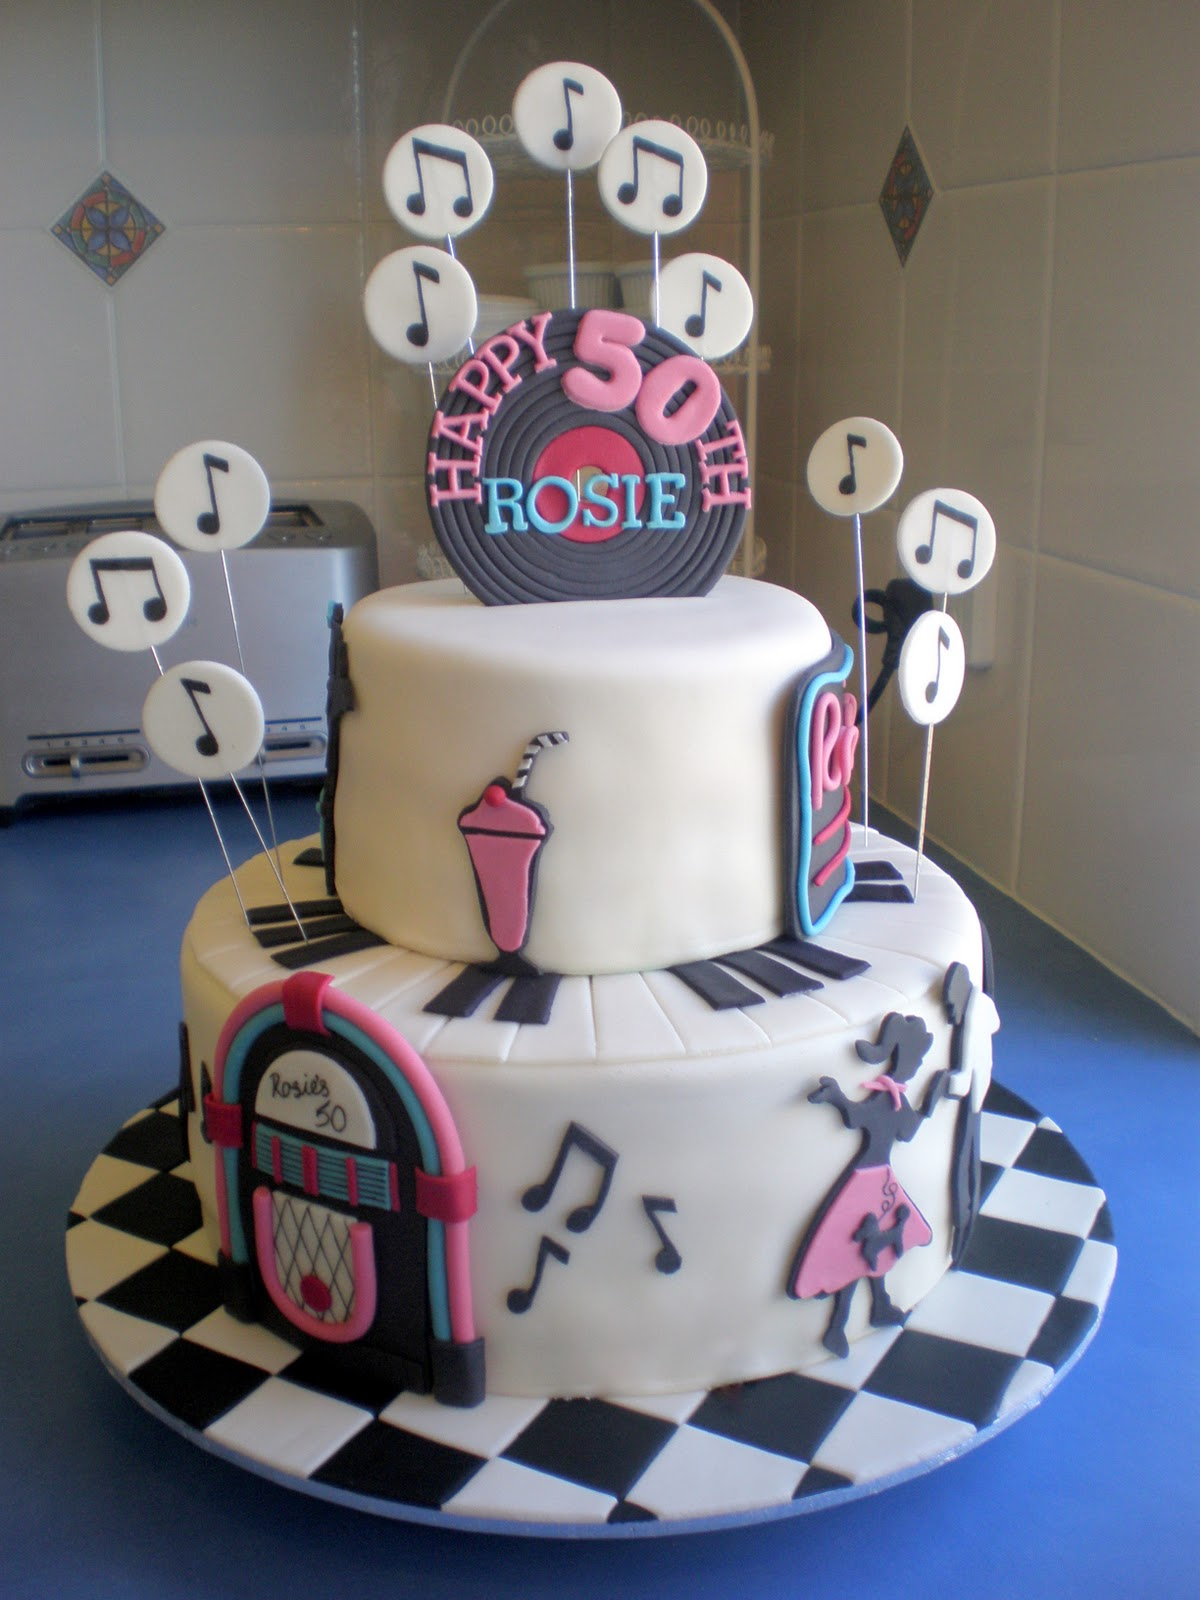 The Cake For Both Tiers Was 3 Layers Of Blondie Vanilla Butter With Italian Meringue Buttercream However I Tinted To